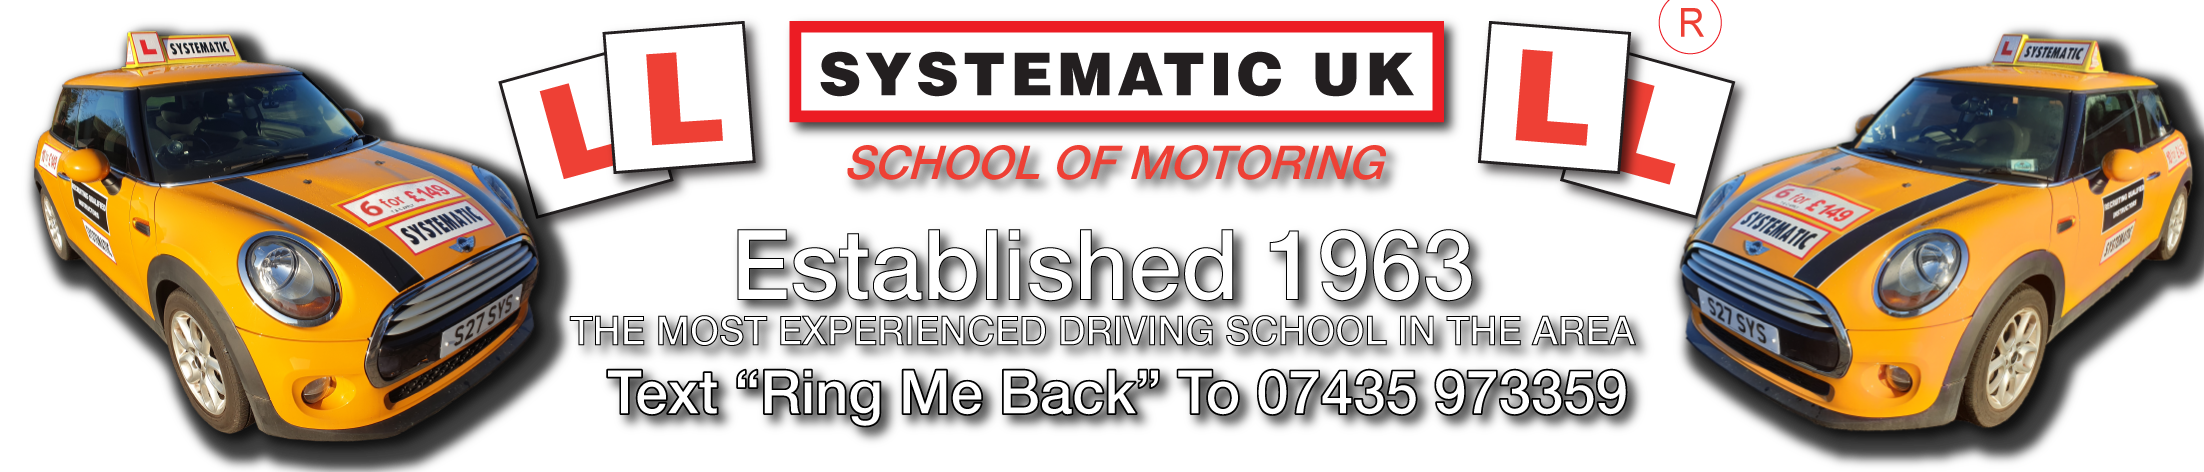 Systematic UK